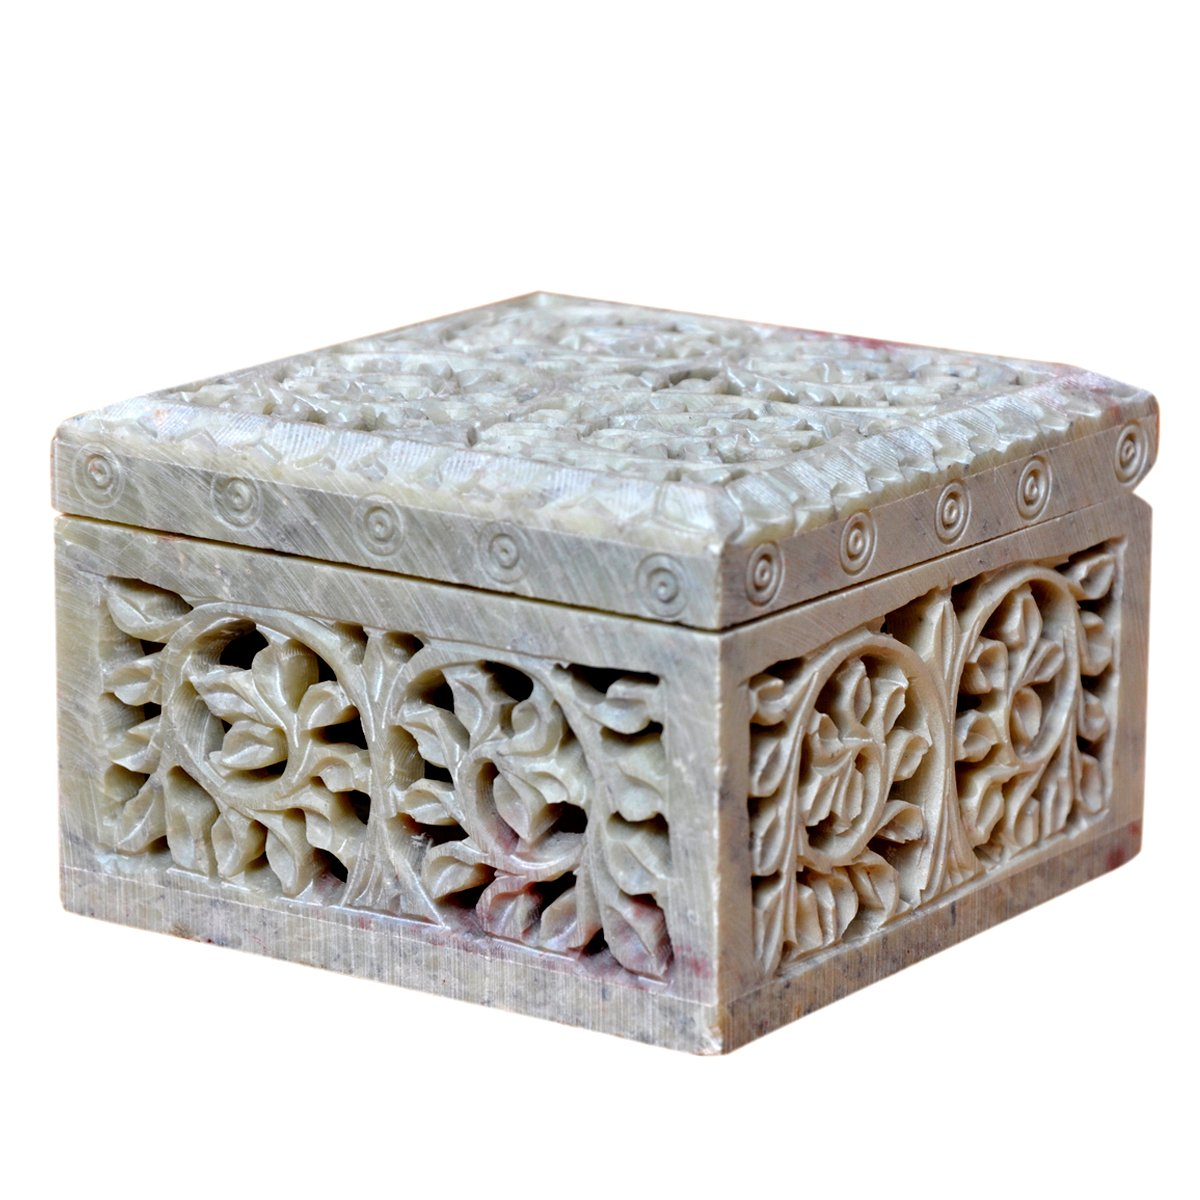 Hashcart Indian Artisan, Handmade & Handcrafted Stone Jewelry Box/Jewelry Storage Organizer/Trinket Jewelry Box/Gift Box with Traditional Design by Hashcart (Image #2)